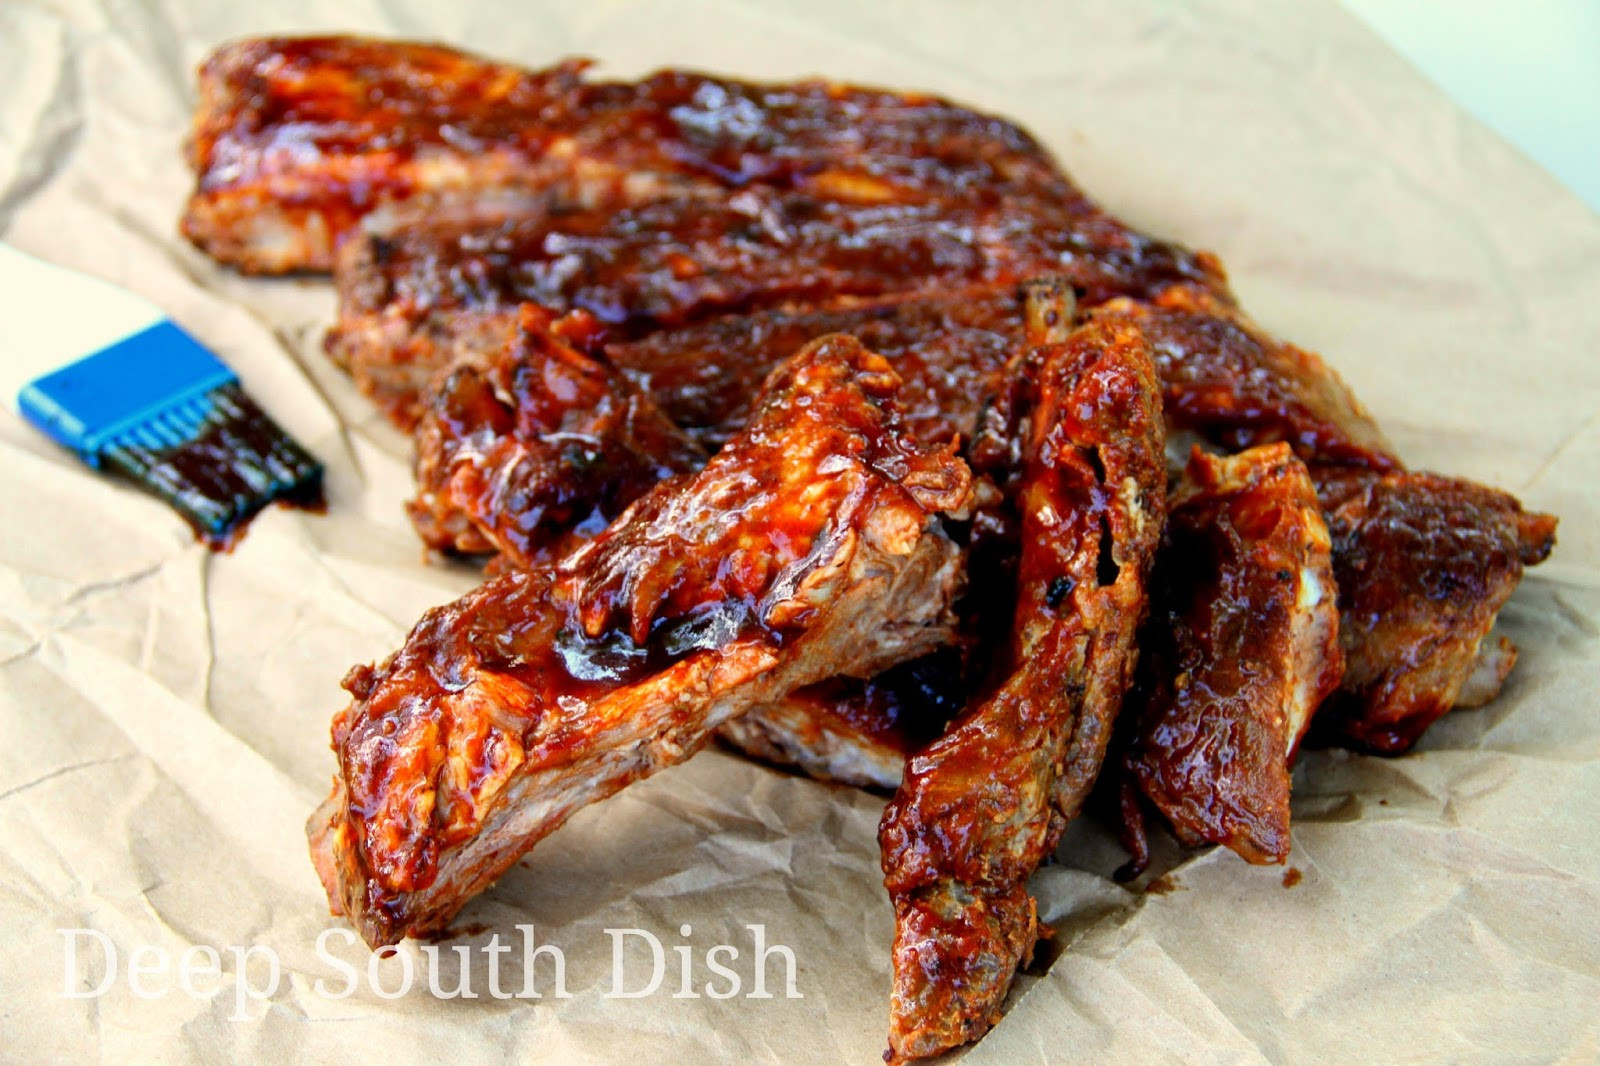 Grilled Pork Ribs Recipe  Deep South Dish Grilled Pork Spareribs or Baby Back Ribs